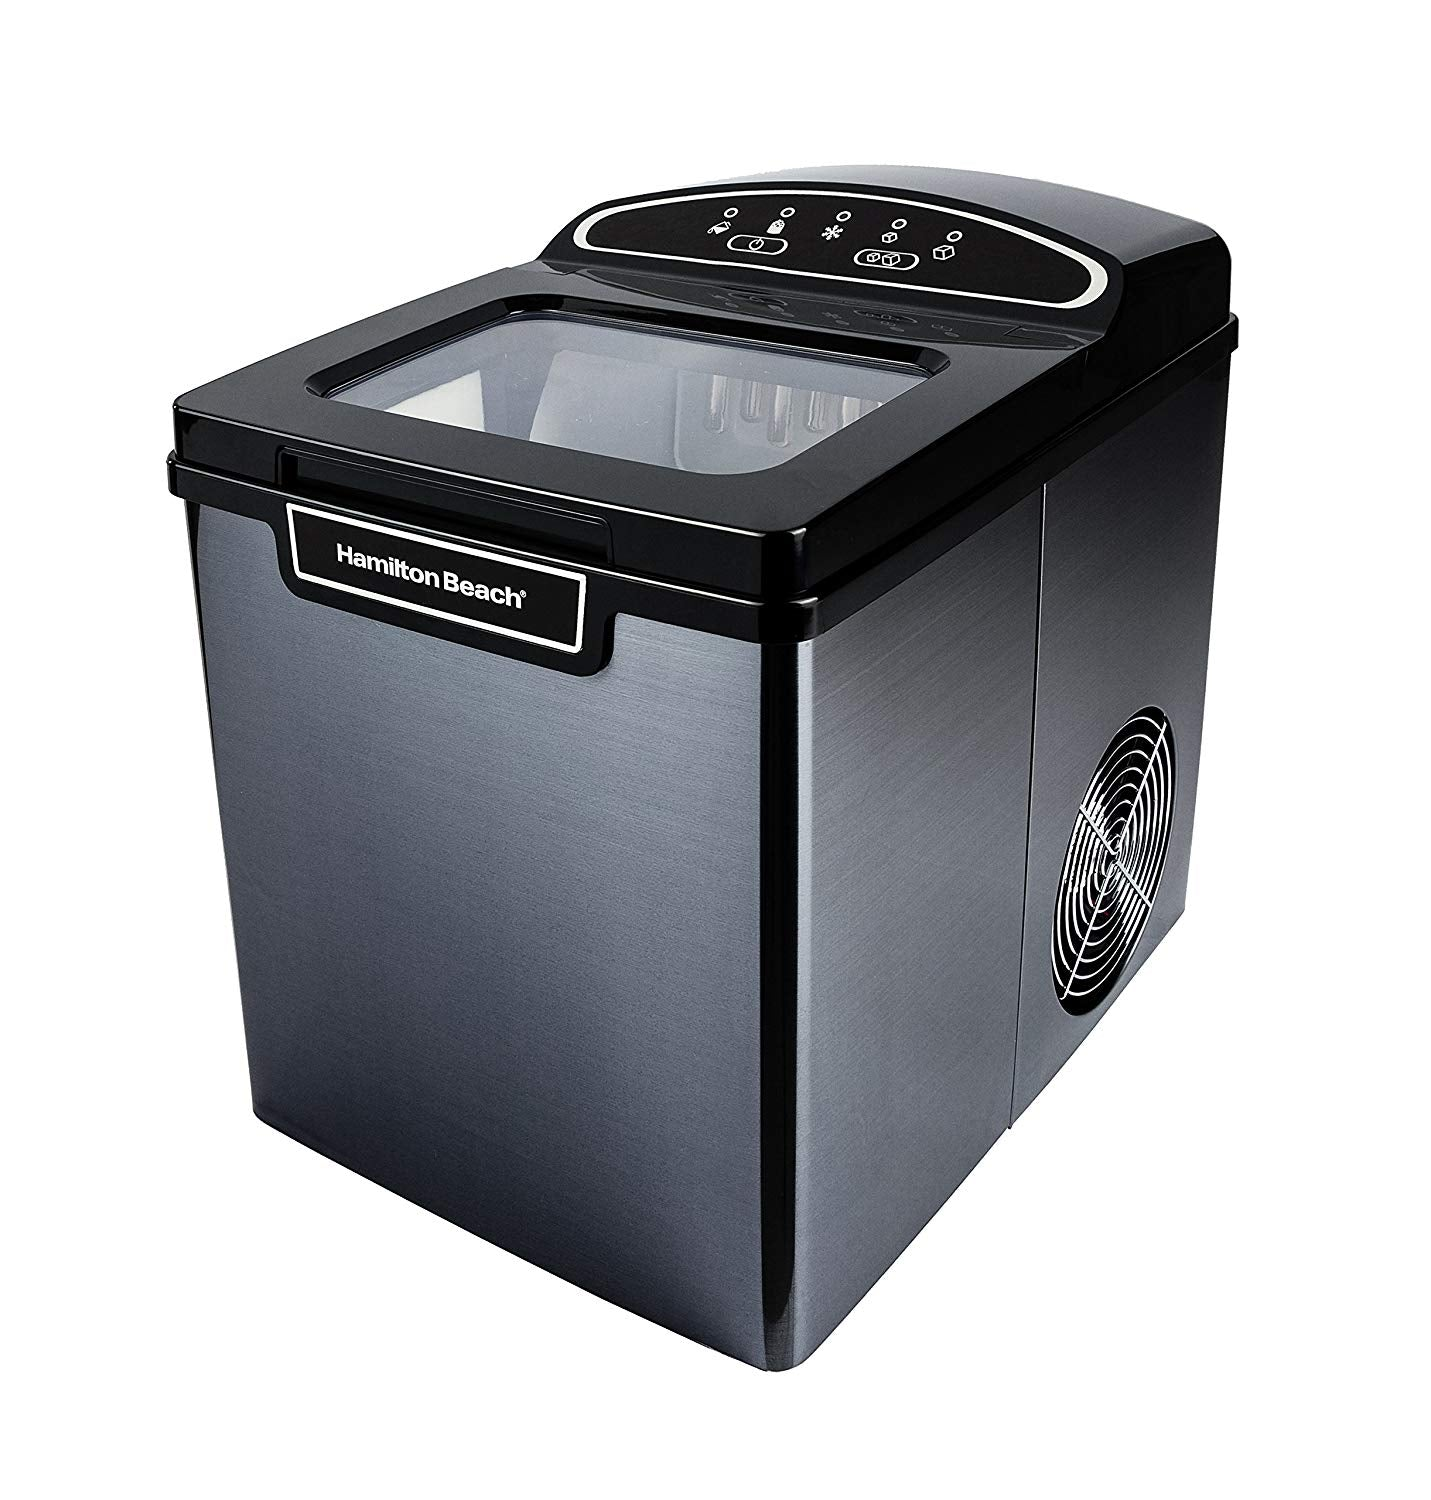 PIM-2-3A Portable Ice Maker, 26 lb. Capacity, Black Stainless Steel